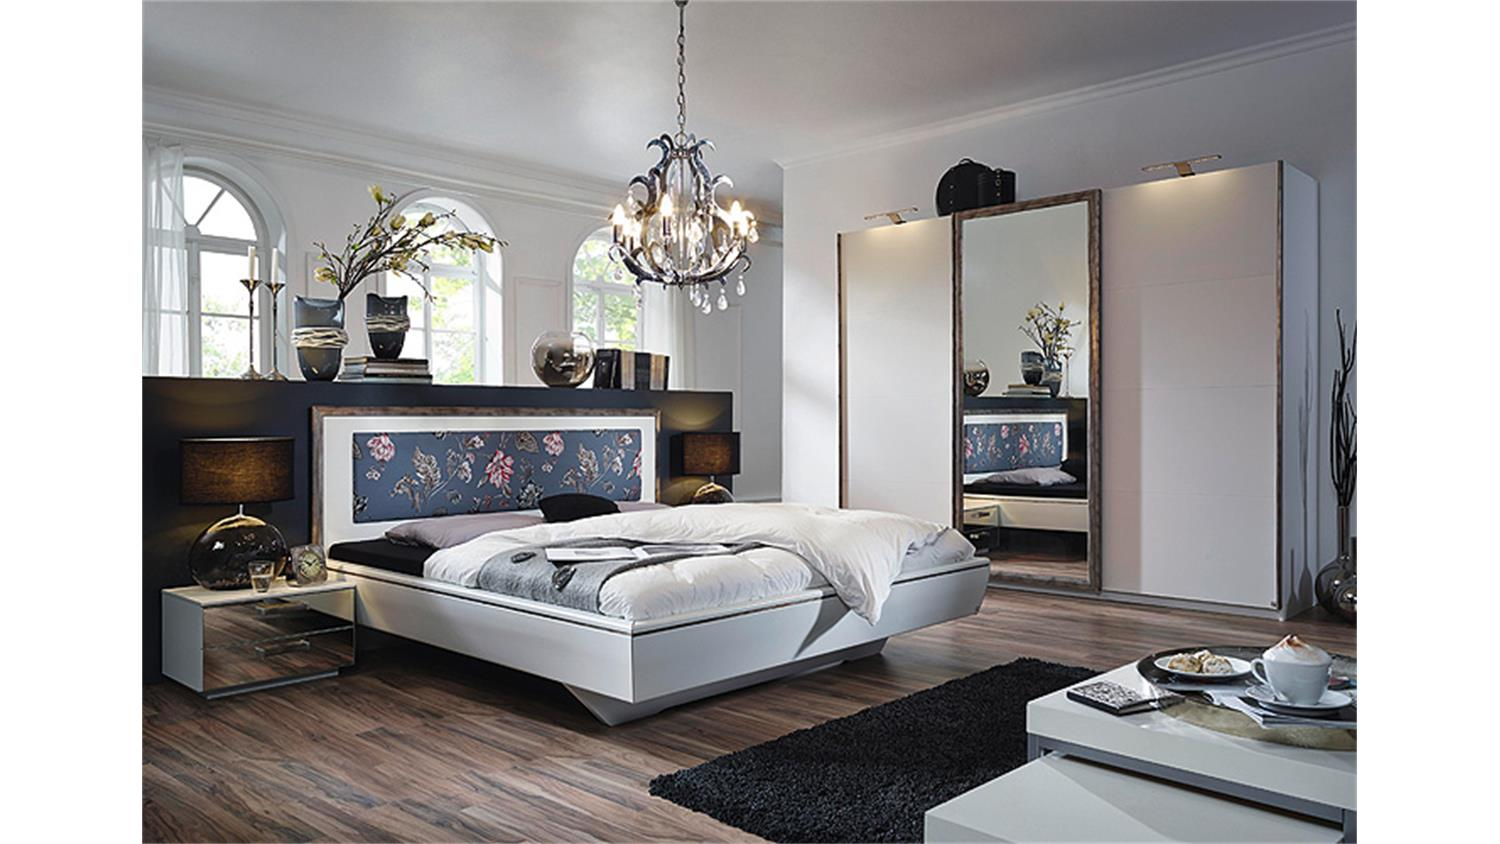 schlafzimmer grau 100 images schlafzimmer schlafzimmer landhaus grau landhaus grau. Black Bedroom Furniture Sets. Home Design Ideas